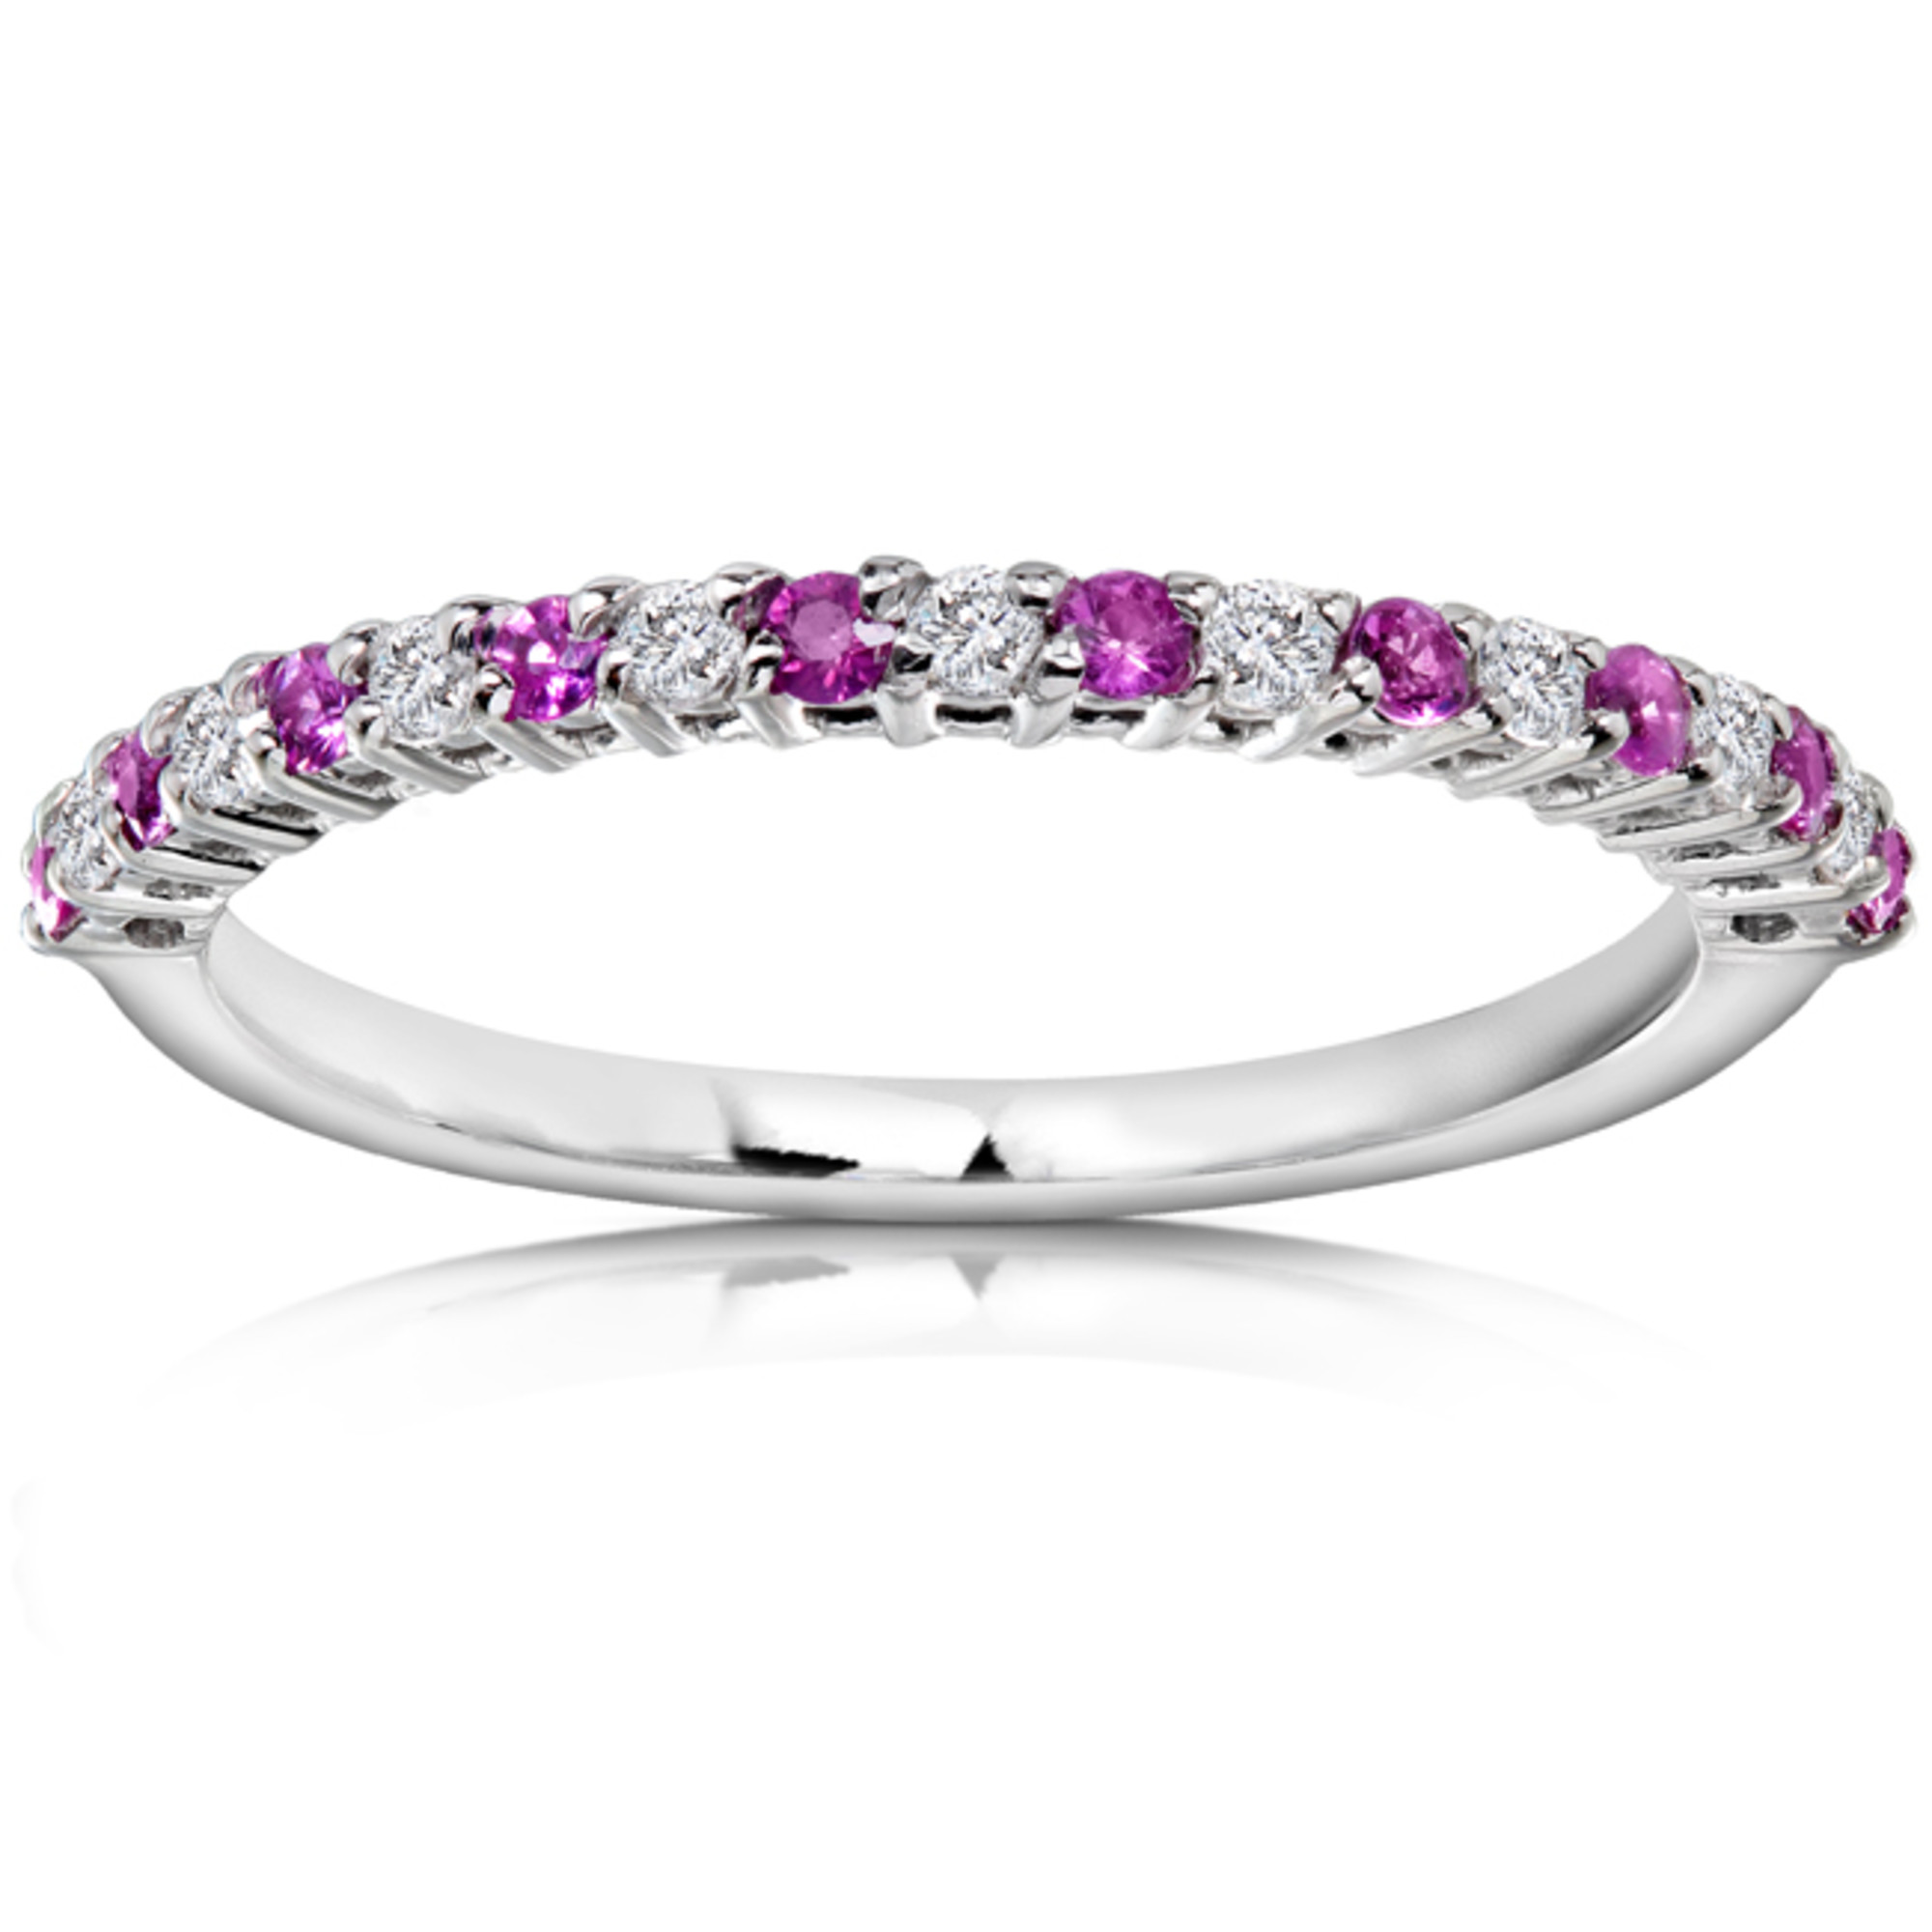 Diamond and Pink Sapphire Band 1 4 CTW in Platinum by